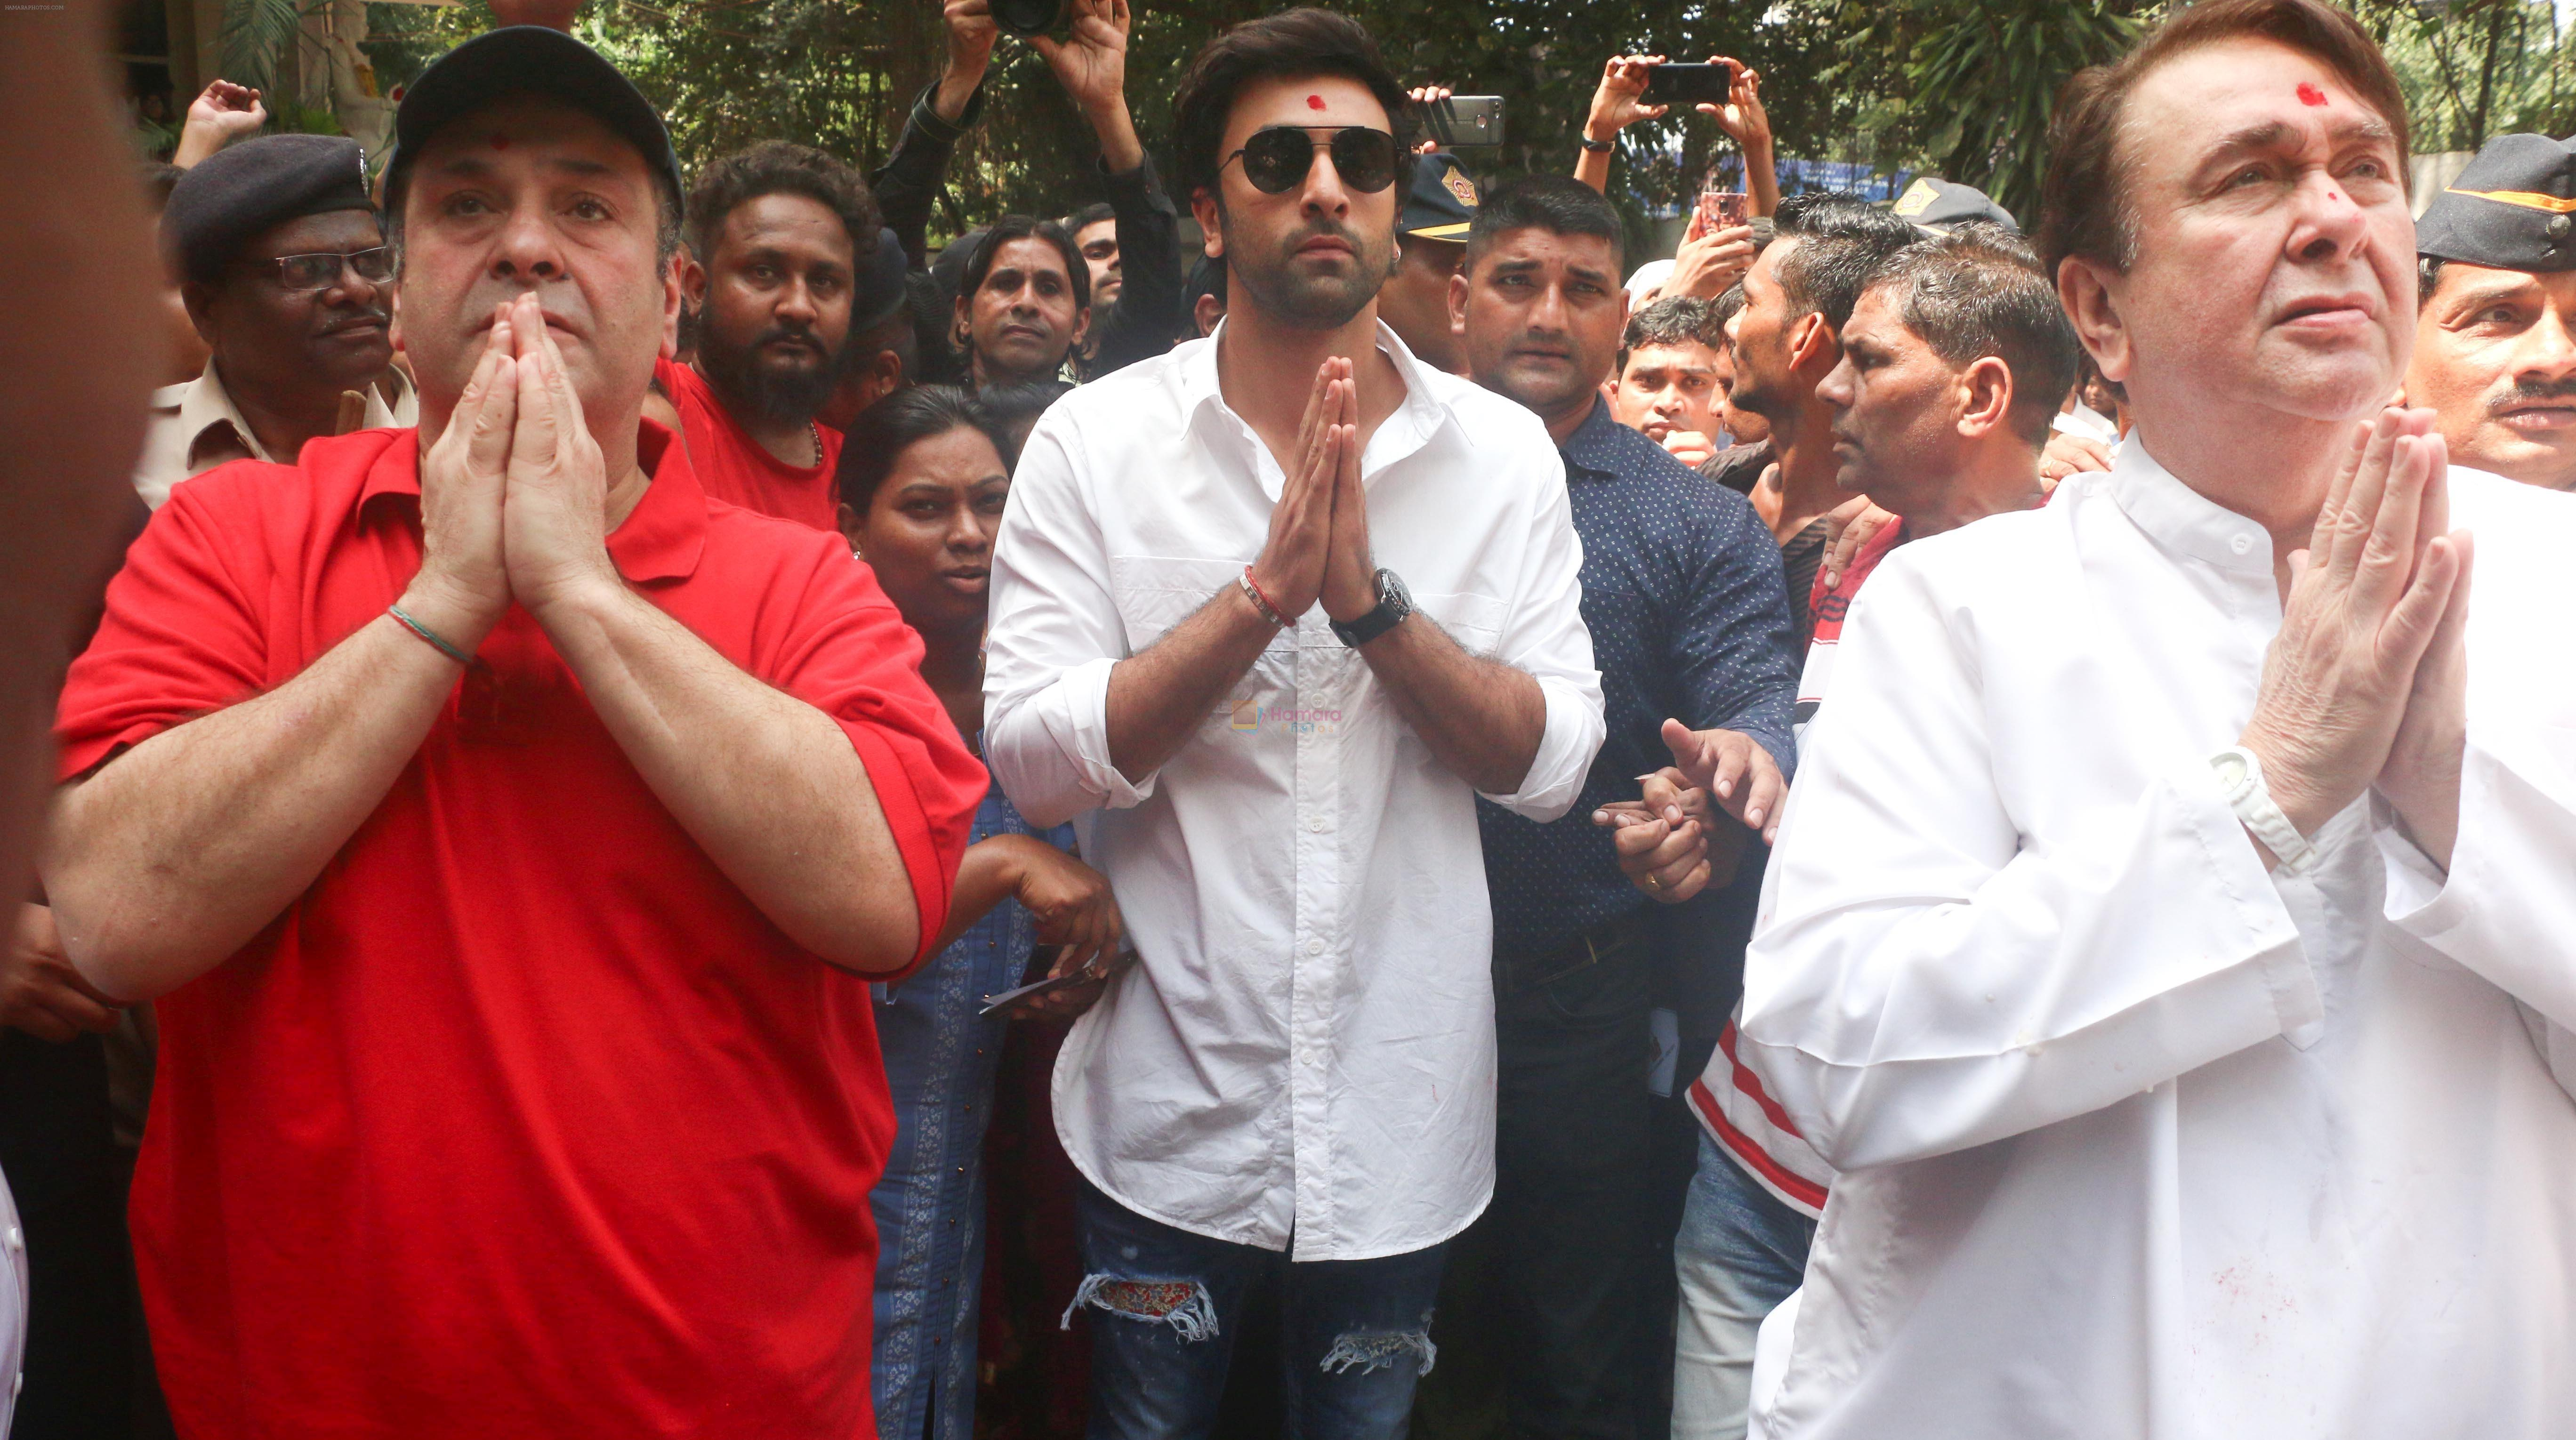 Ranbir Kapoor, Rajiv Kapoor, Randhir Kapoor At The RK Studio's Ganesha Immersion In Chembur on 23rd Sept 2018